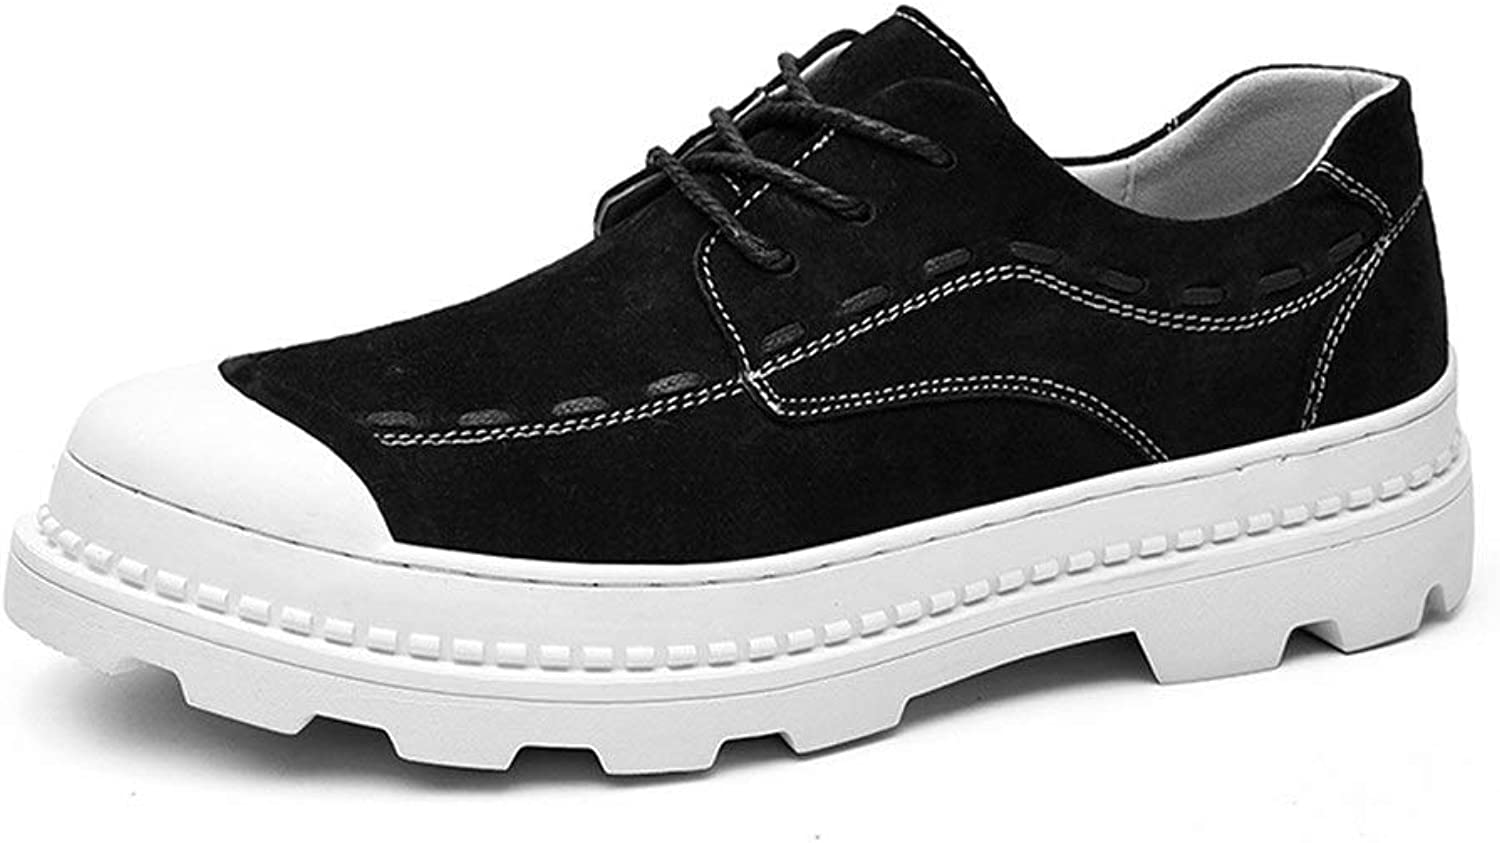 Athletic shoes for Men Sports shoes Lace Up PU Leather Light Flexible and Simple (color   Black, Size   9.5 D(M) US)